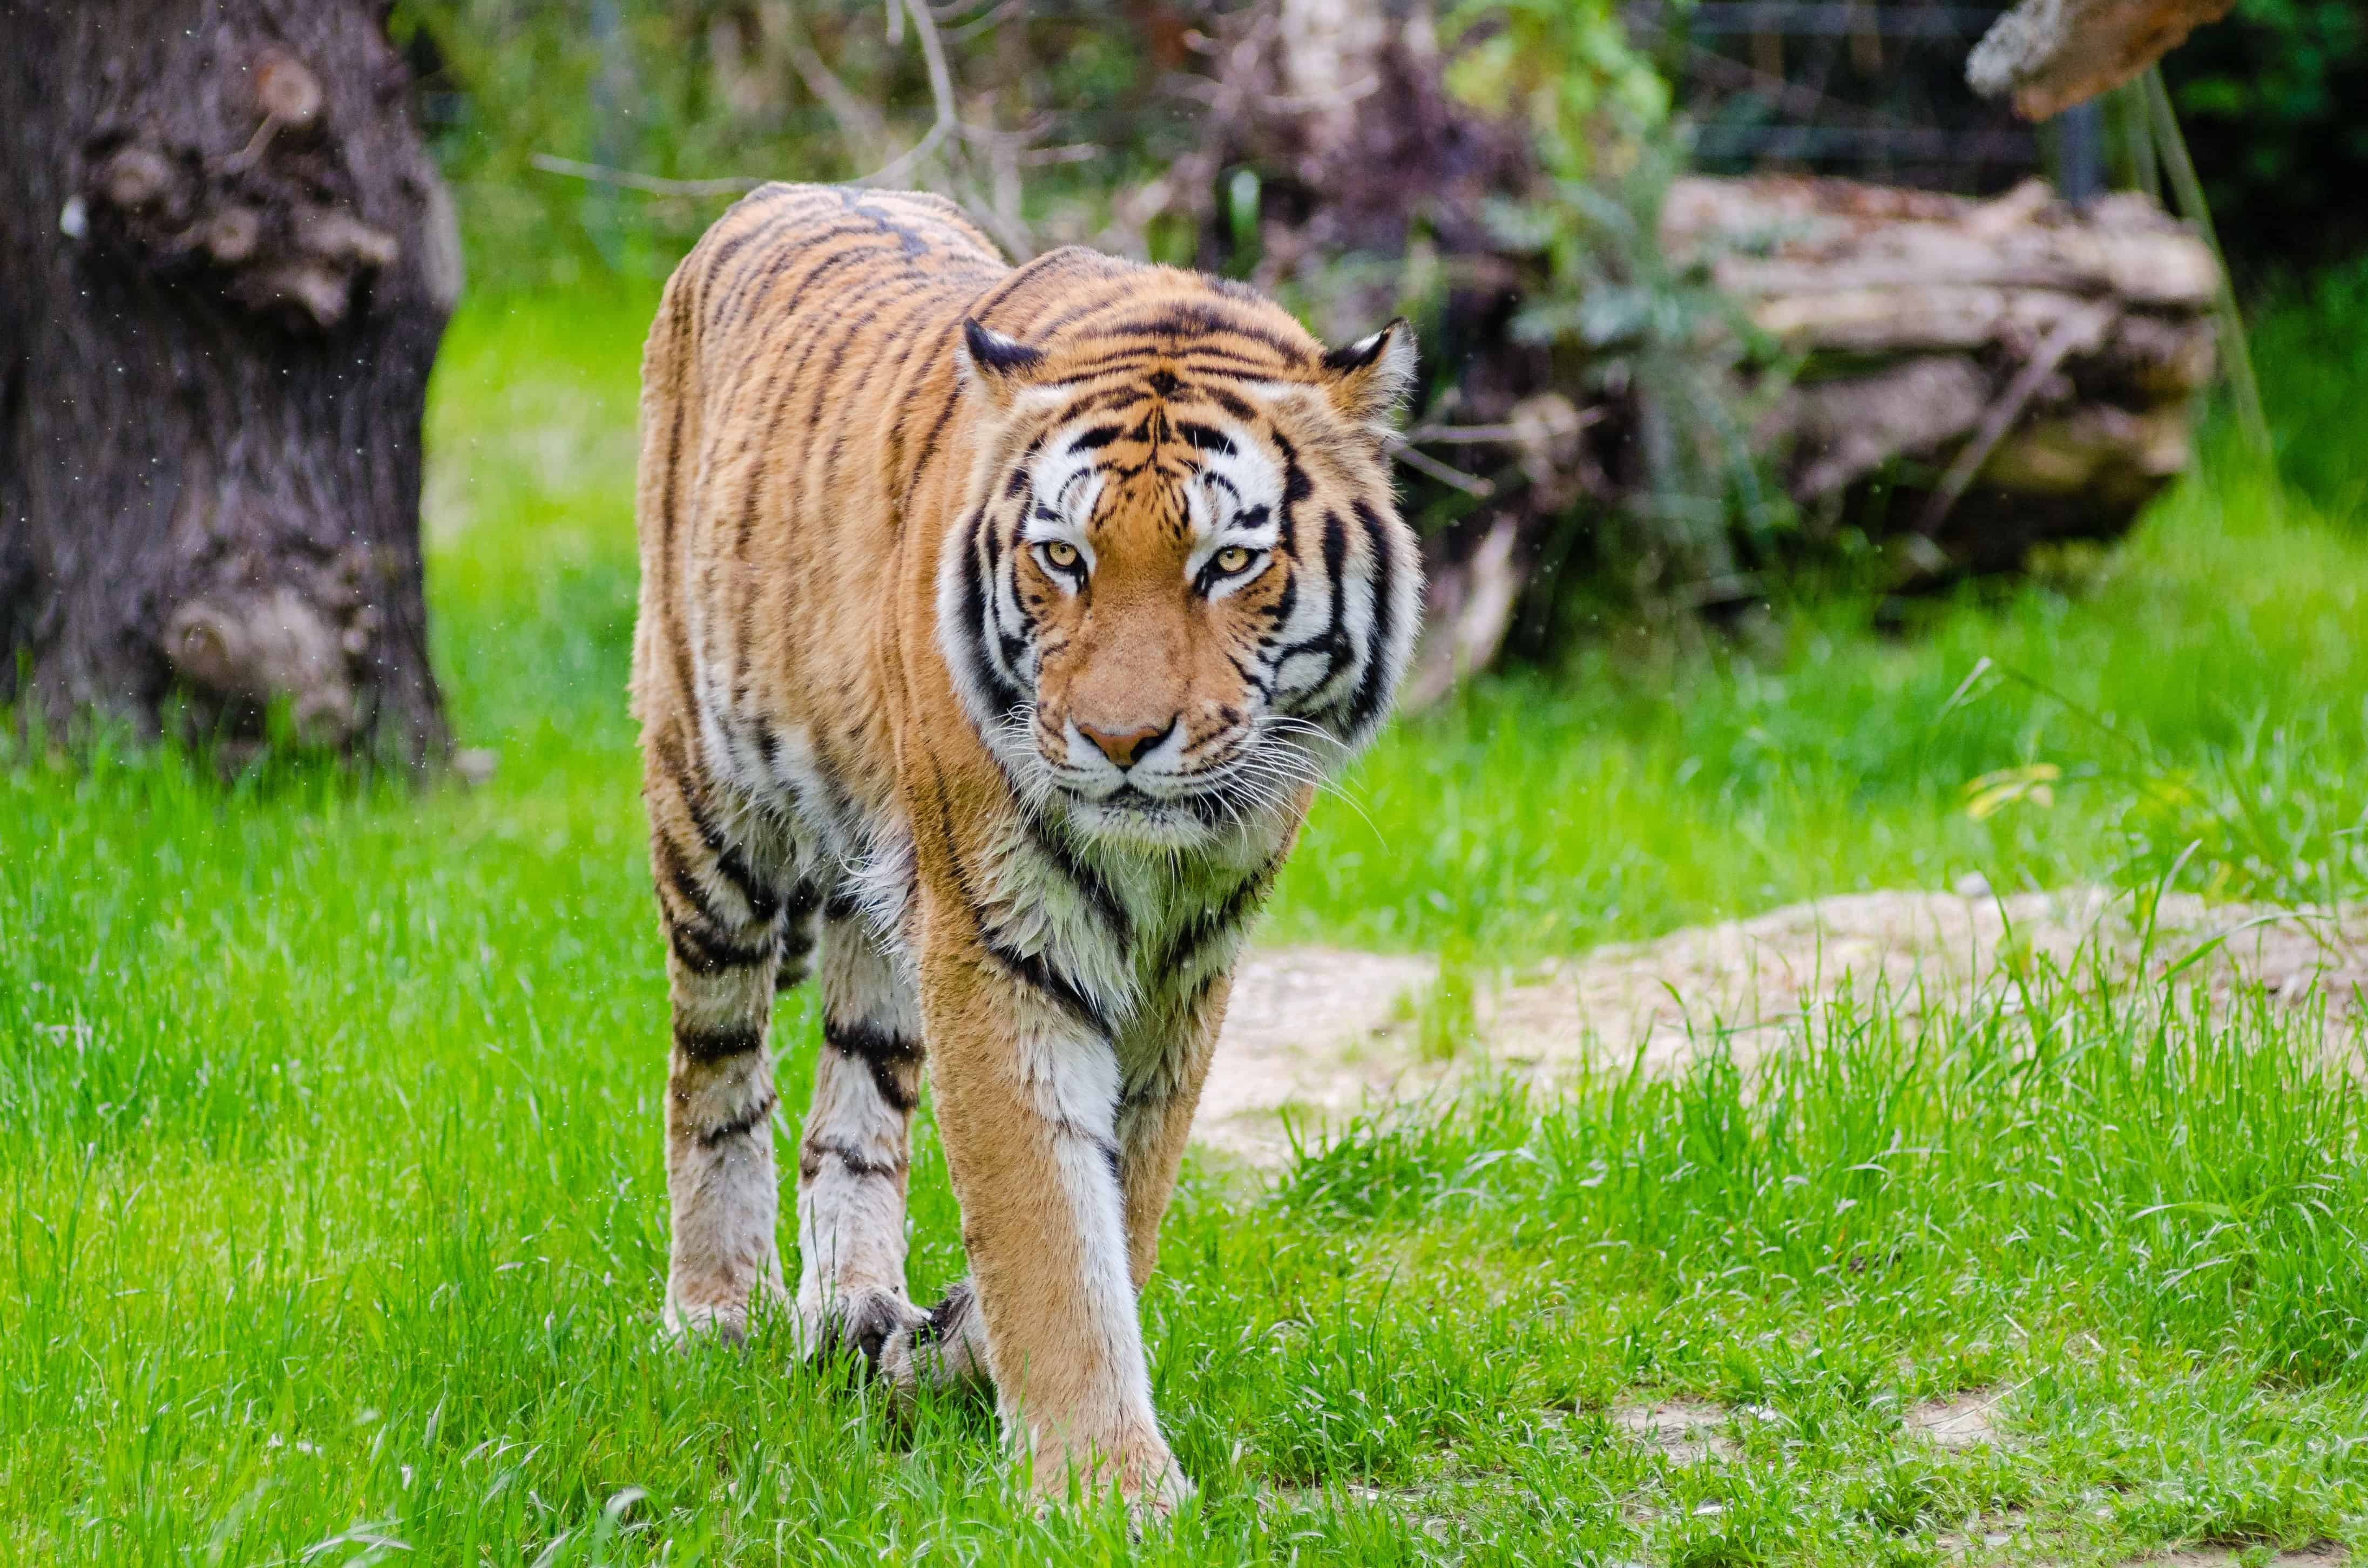 What are some interesting facts about Bengal Tigers